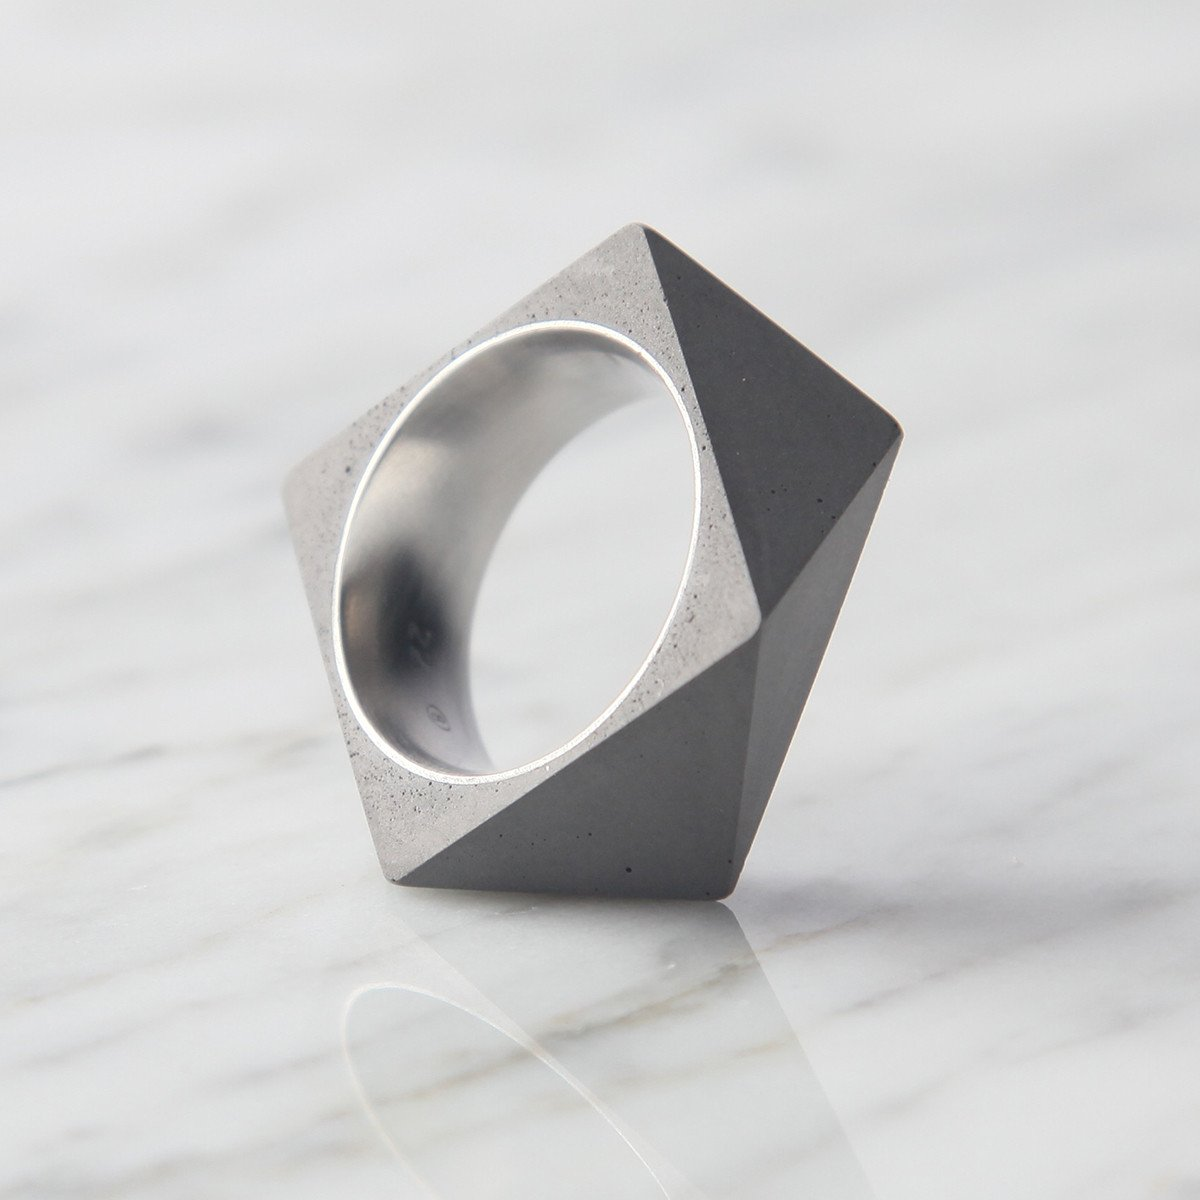 Polygon Concrete Ring -33559